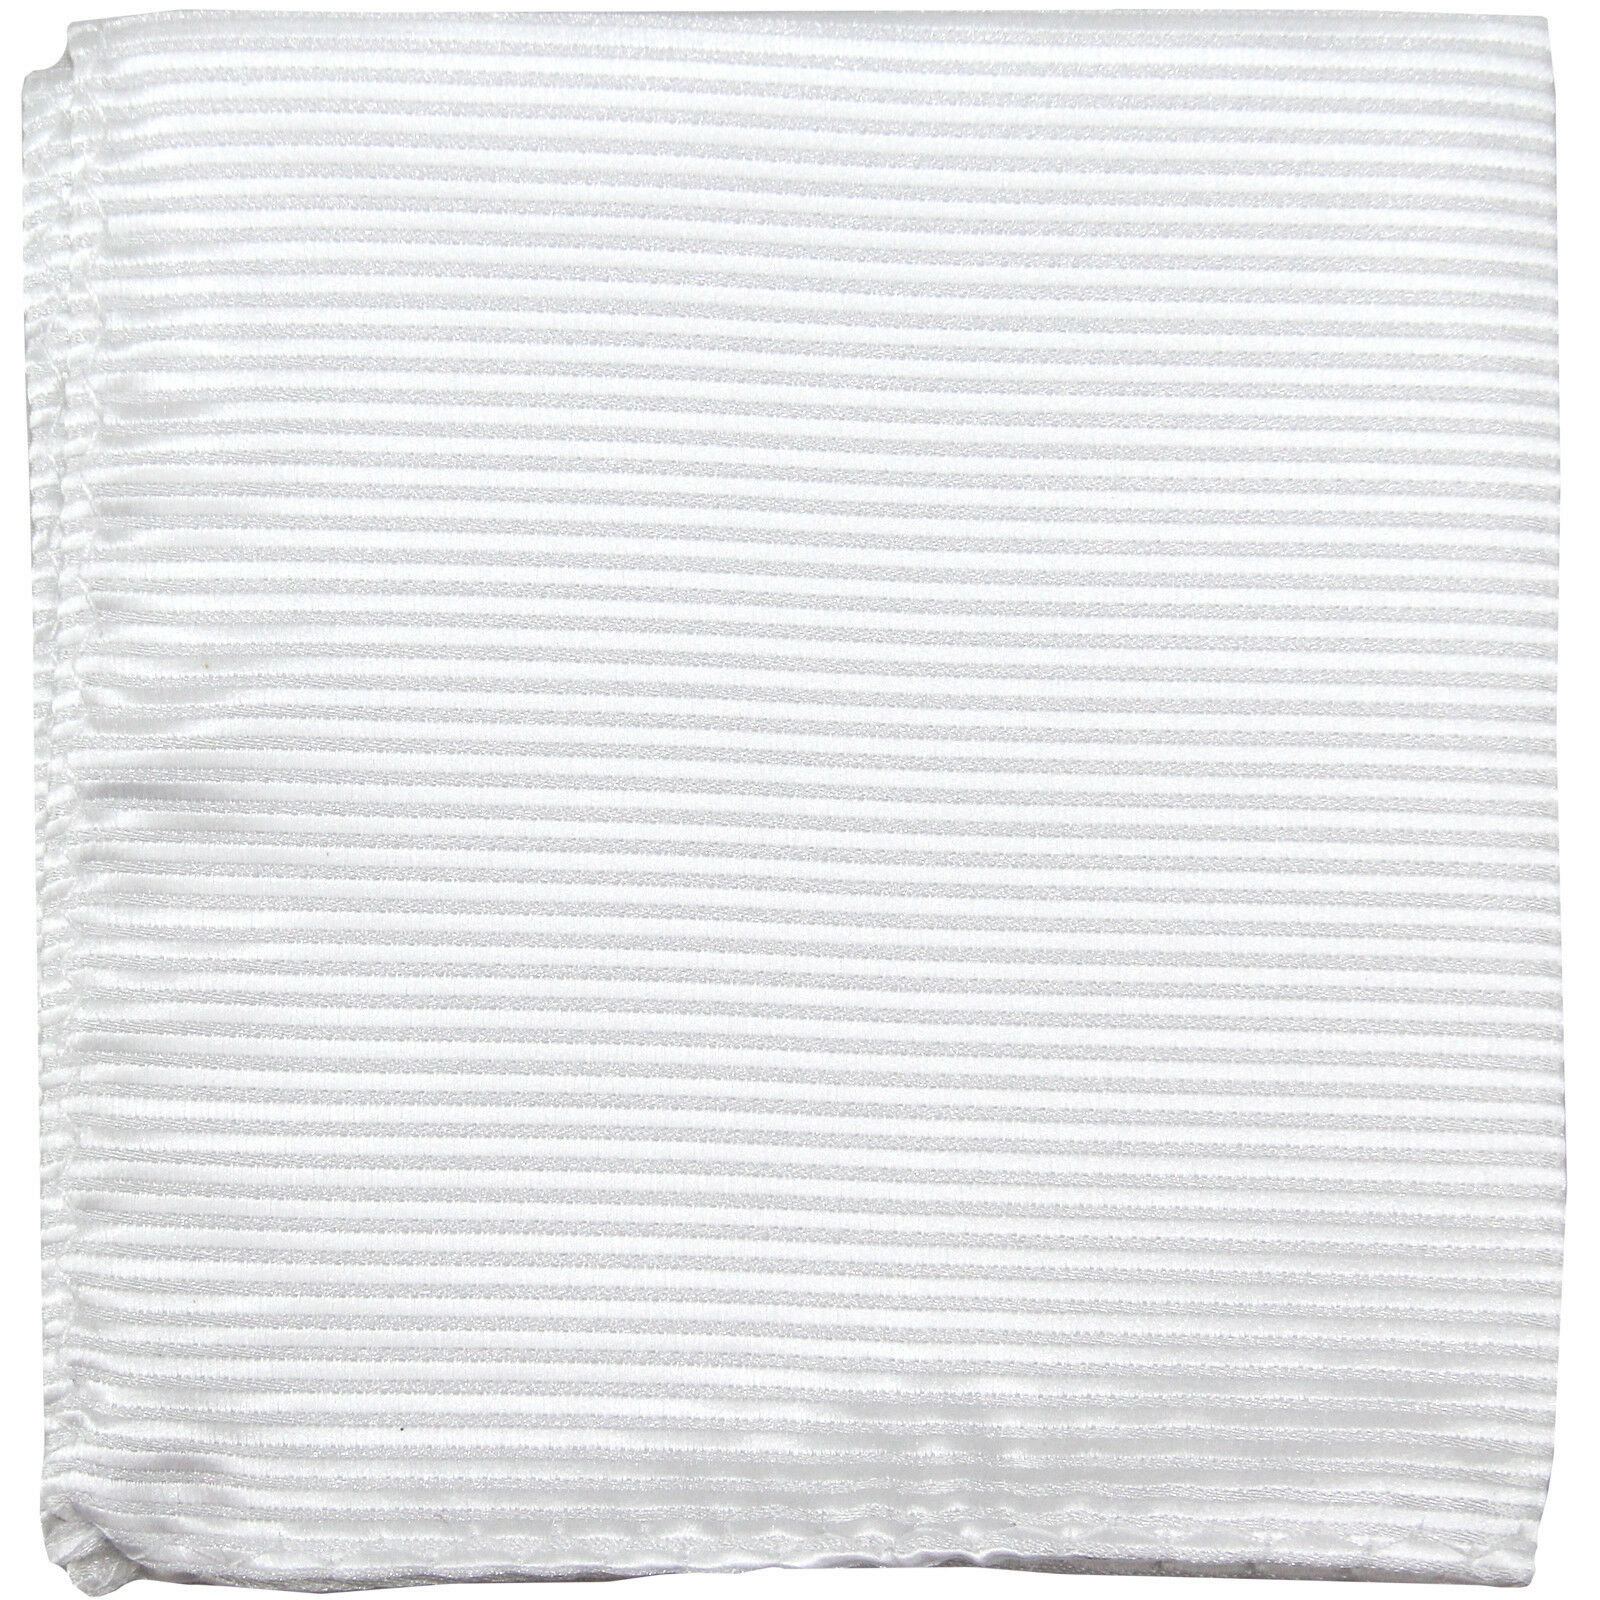 New polyester thin pin striped pocket square hankie handkerchief white formal